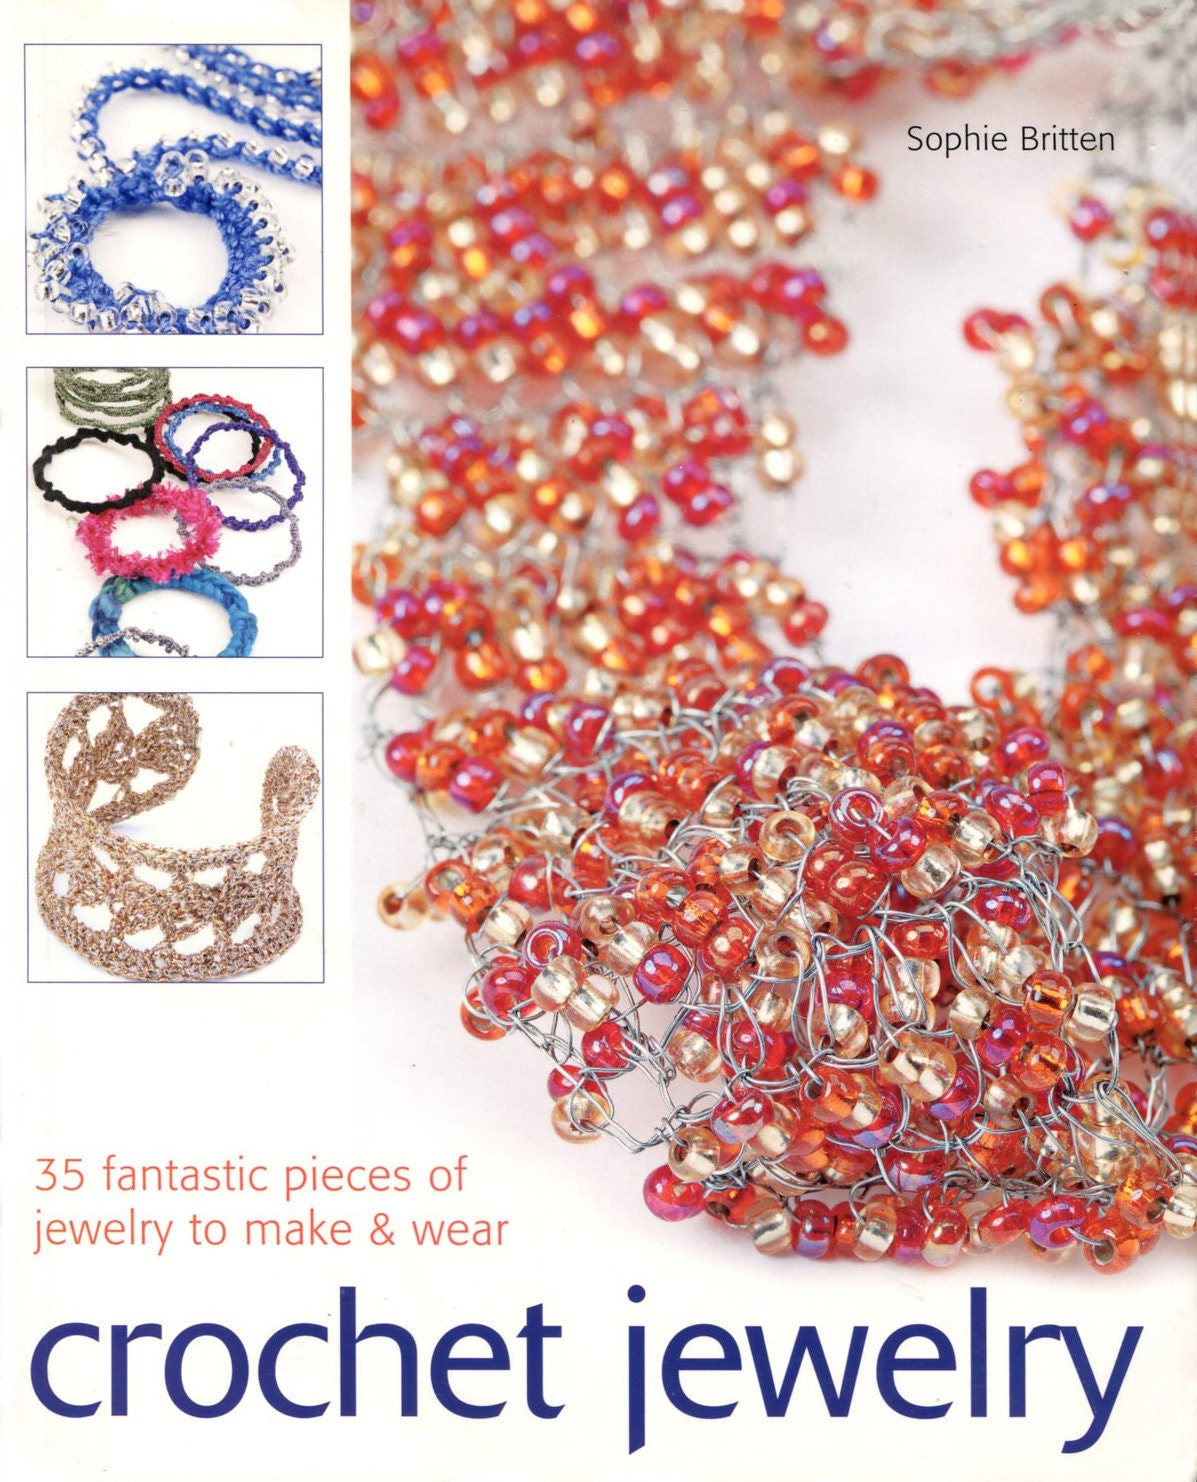 Crochet Jewlery DIY Craft Book - 35 Fantastic Pieces of Jewelry to Make & Wear - Sophie Britten - treazureddesignz